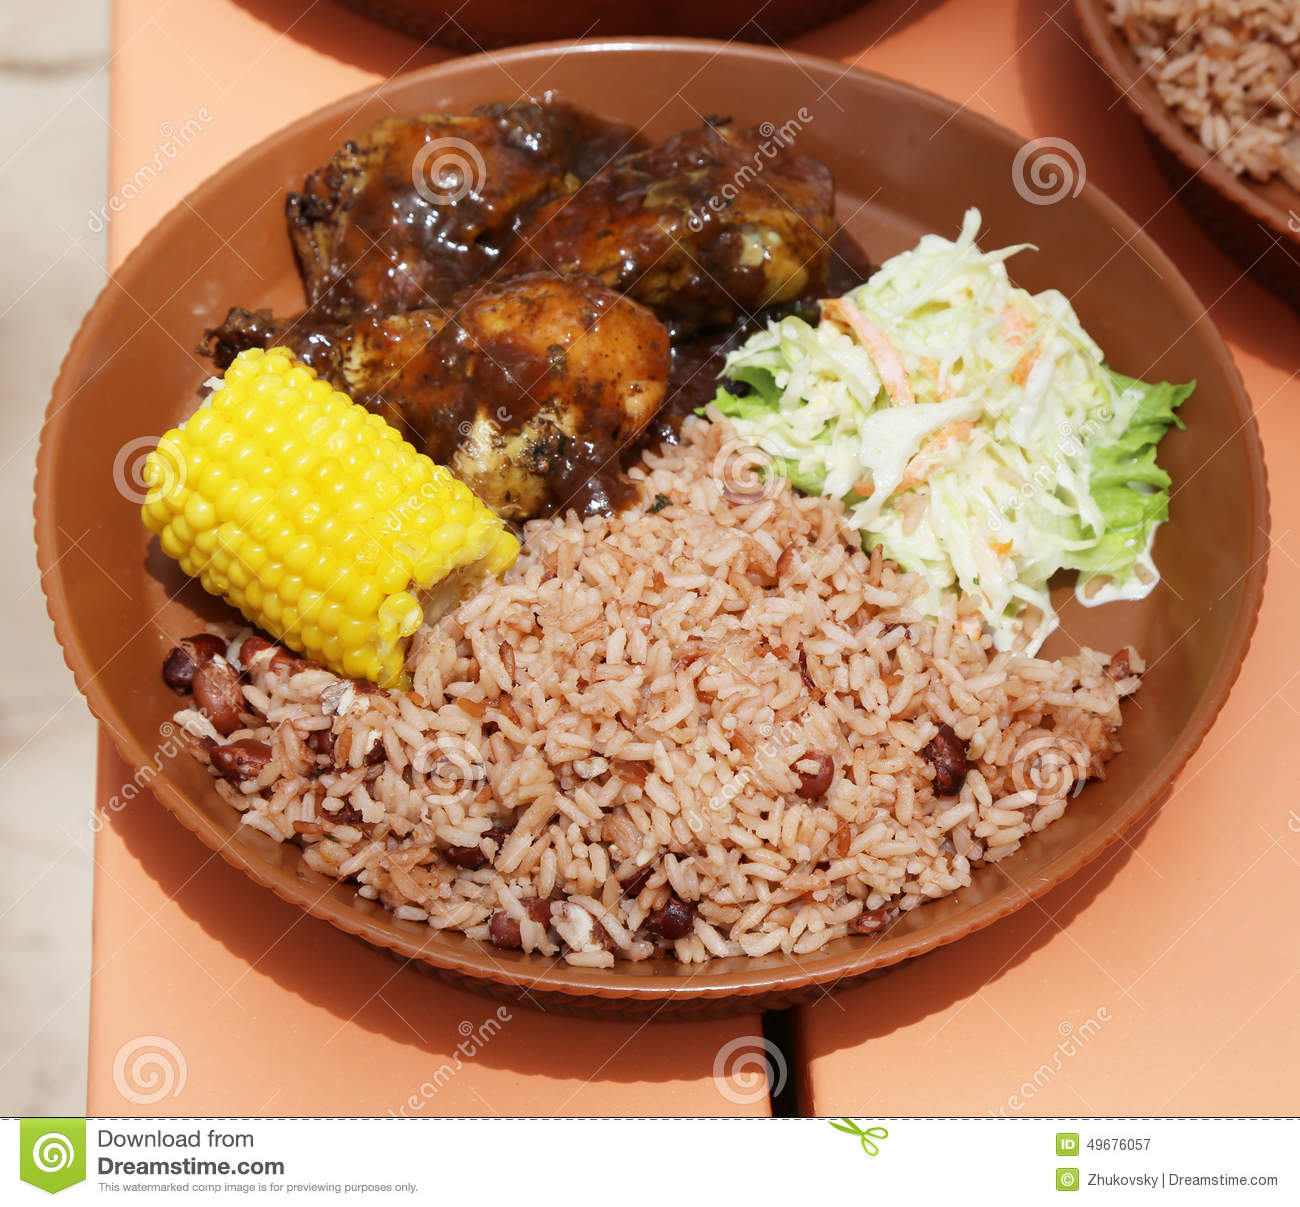 Typical local food at caribbean islands stock image for About caribbean cuisine